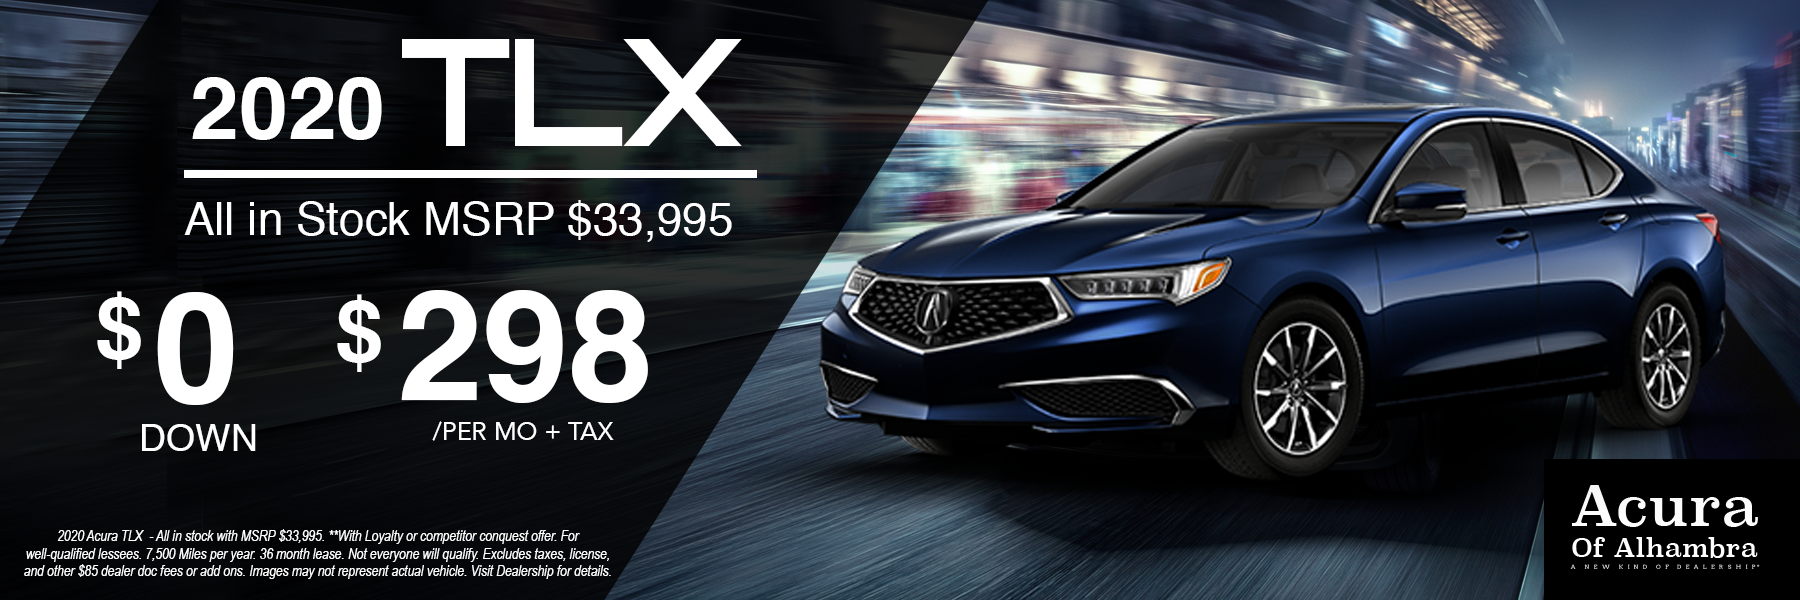 Blue Acura TLX Vehicle for $298 Per Month + tax